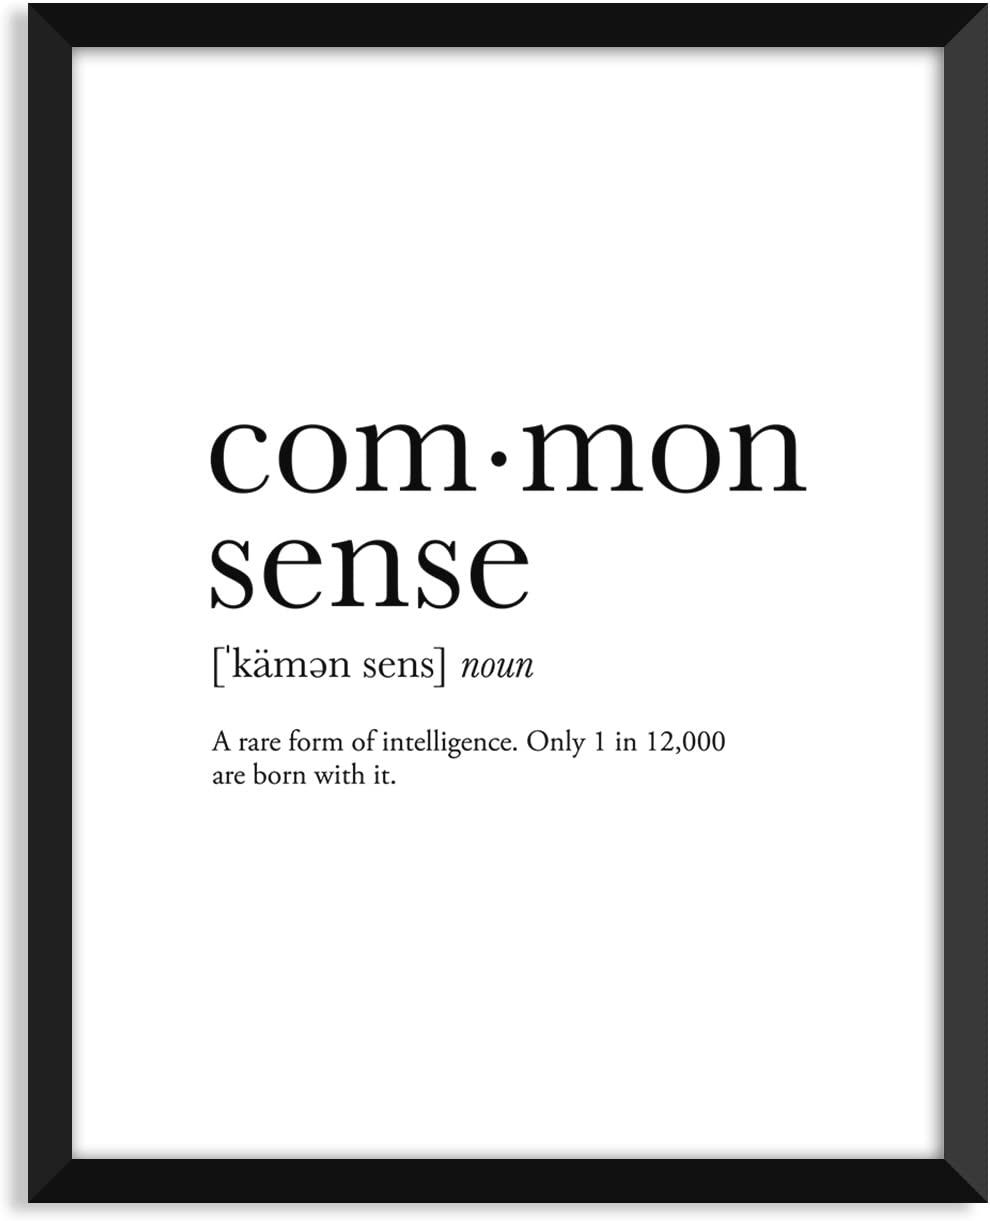 Common Sense definition, college dorm room decor, dorm wall art, dictionary art print, office decor, minimalist poster, funny definition print, definition poster, inspirational quotes